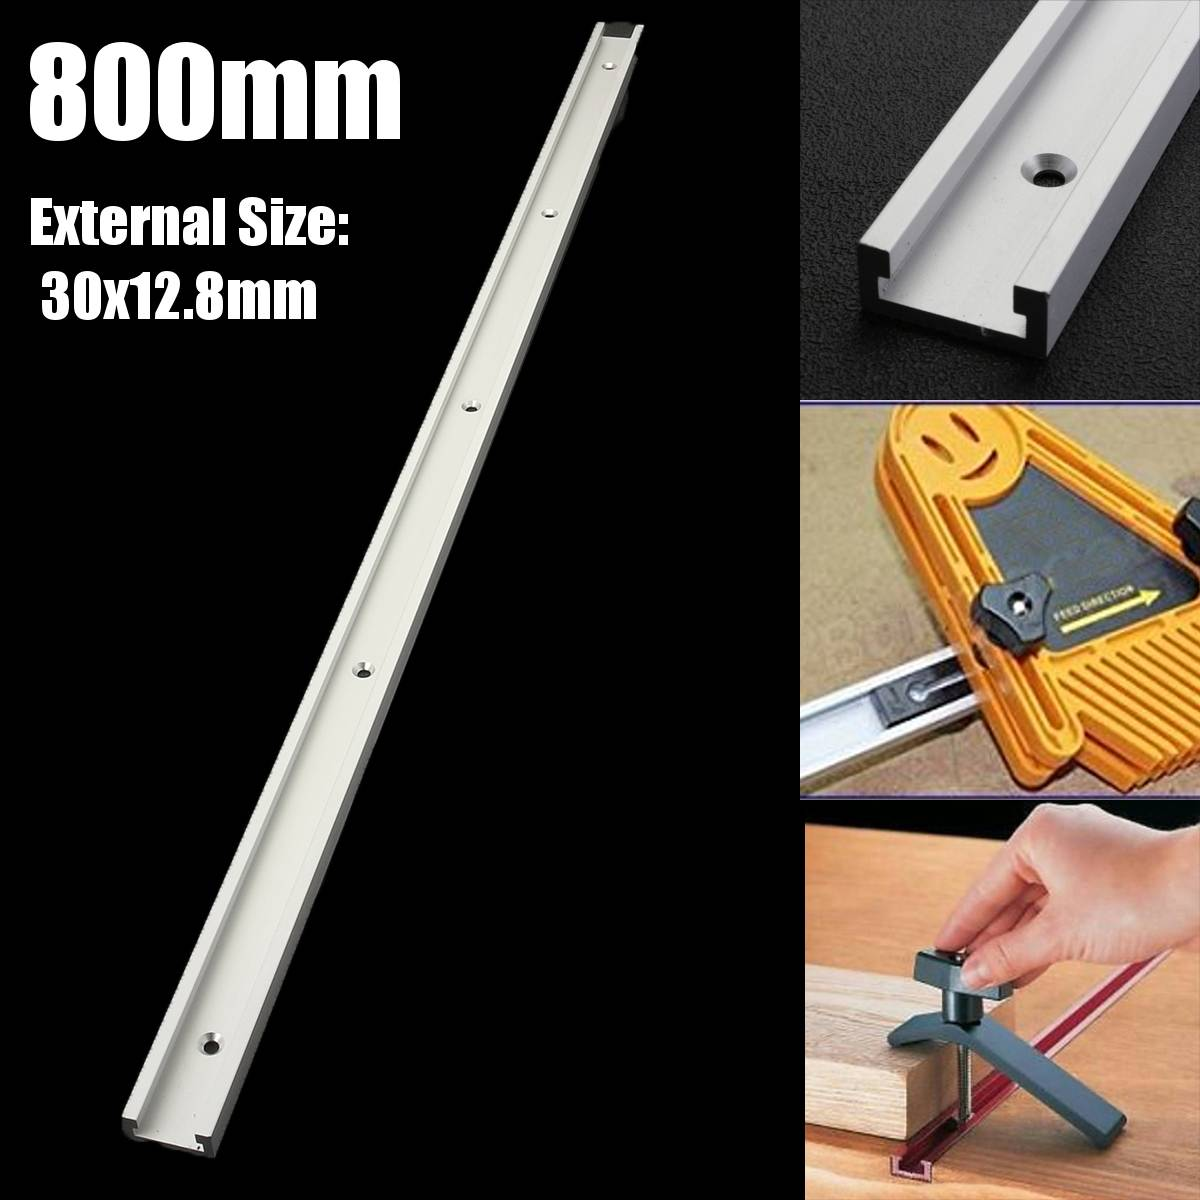 Aluminium Alloy T-track Slot Miter Track Jig Fixture For Router Table Bandsaws Woodworking DIY Tool Length 800mm